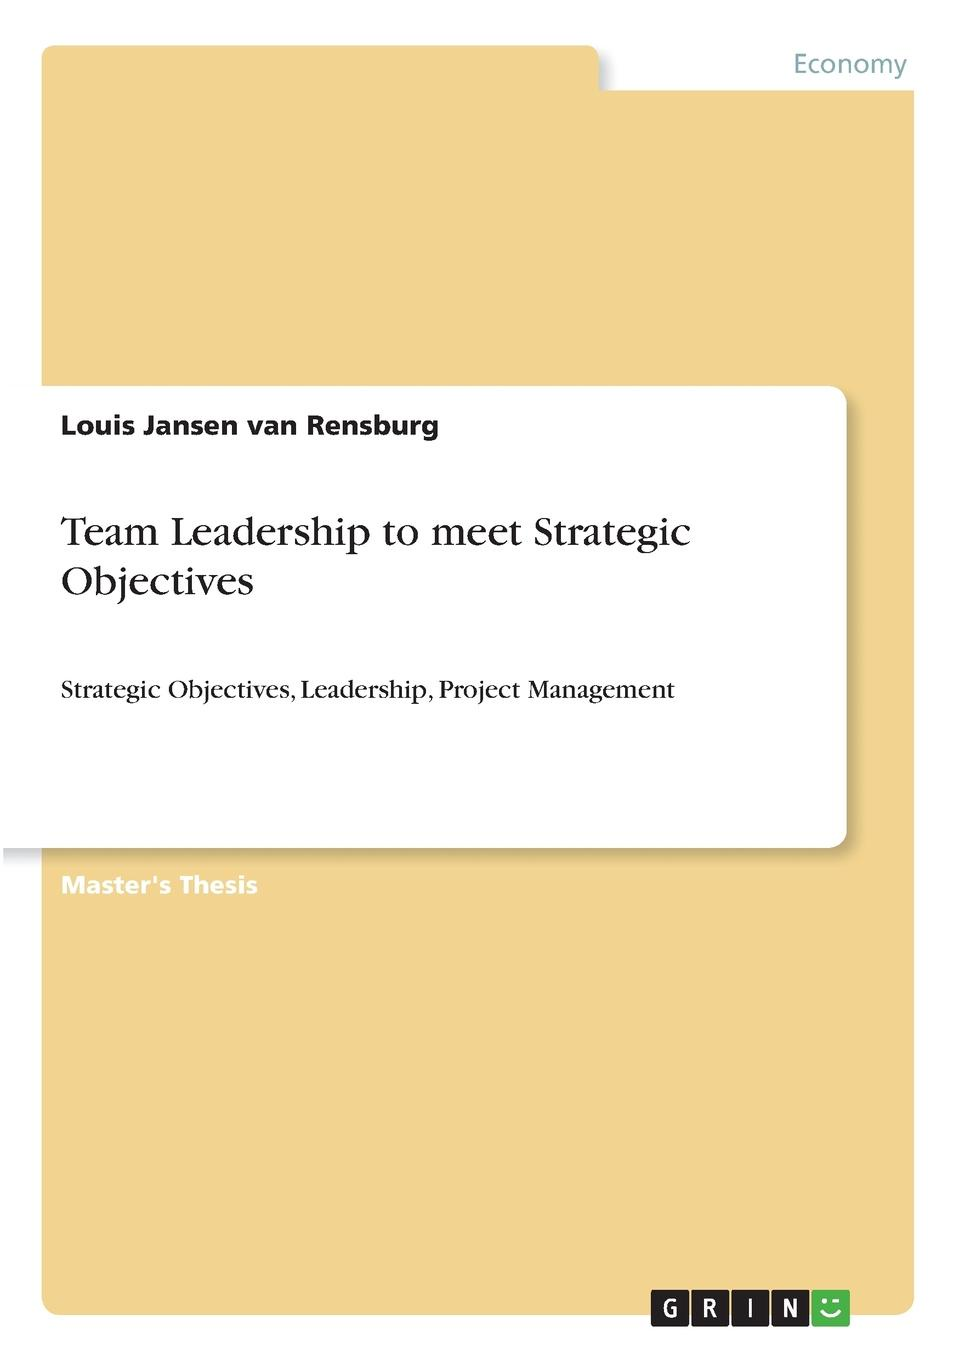 Louis Jansen van Rensburg Team Leadership to meet Strategic Objectives steven stowell j the art of strategic leadership how leaders at all levels prepare themselves their teams and organizations for the future